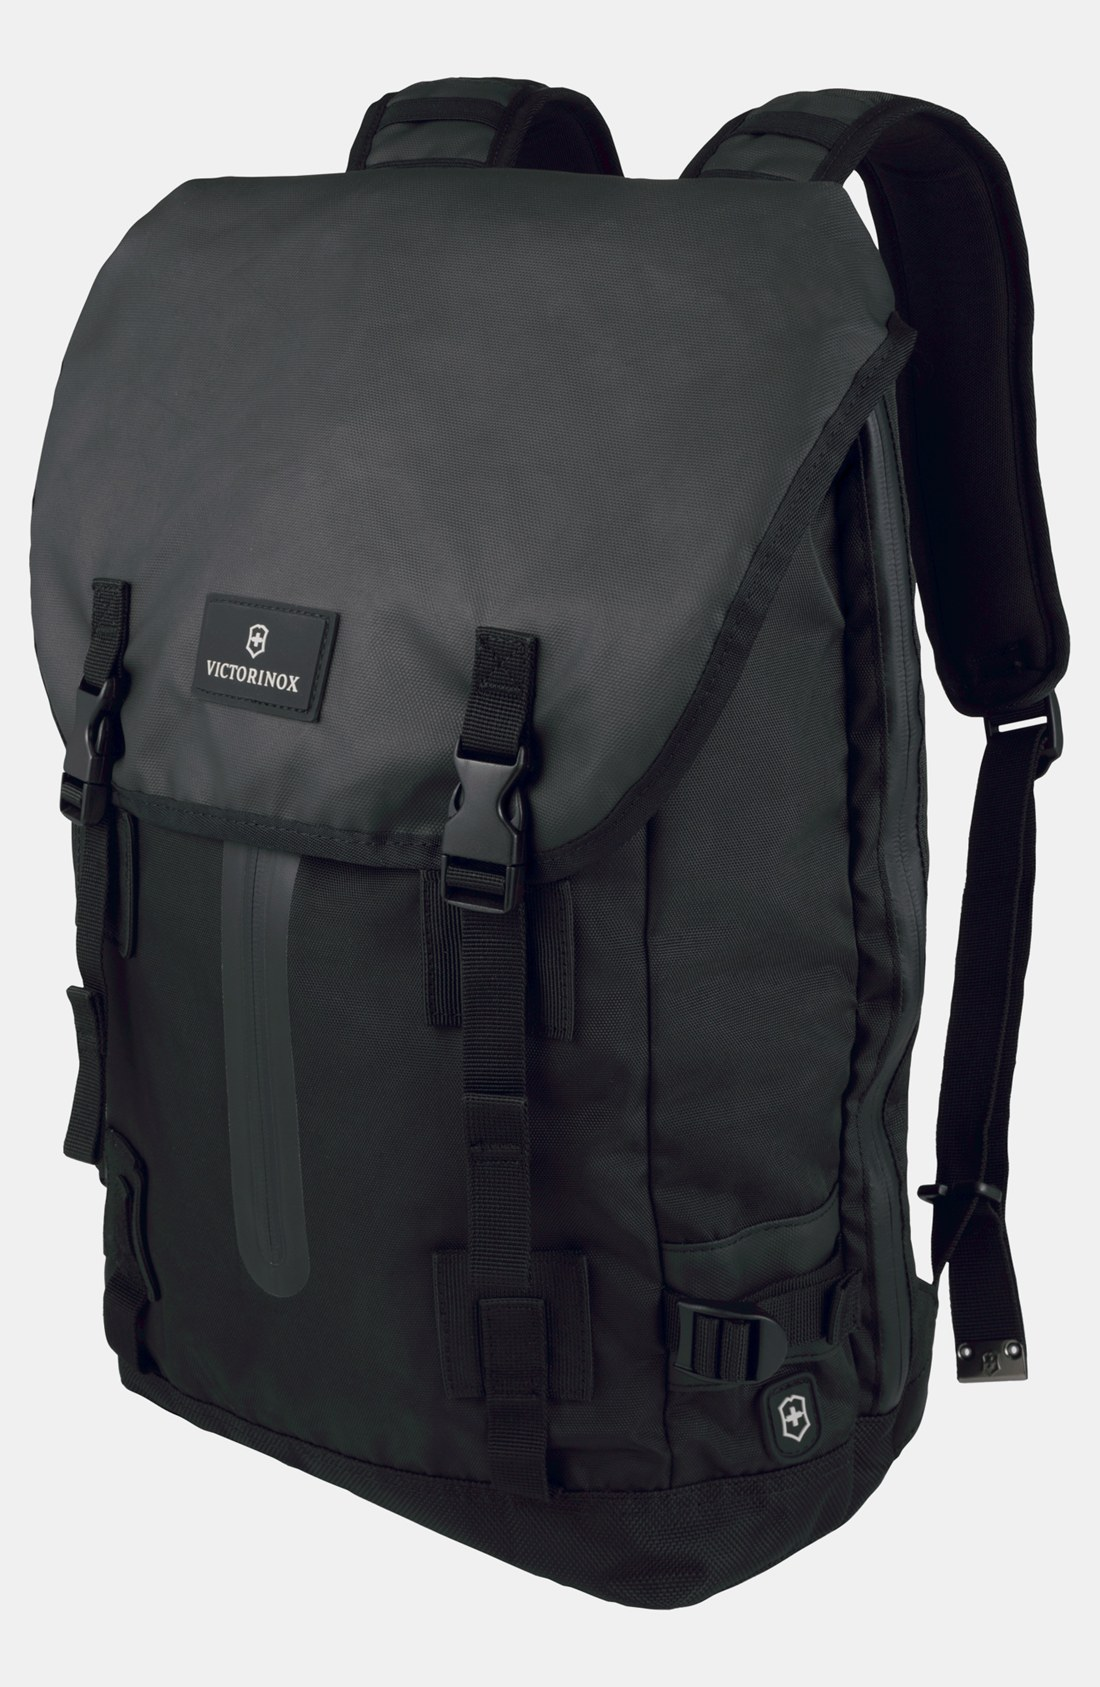 Cool Backpacks For Guys JqQy87sU